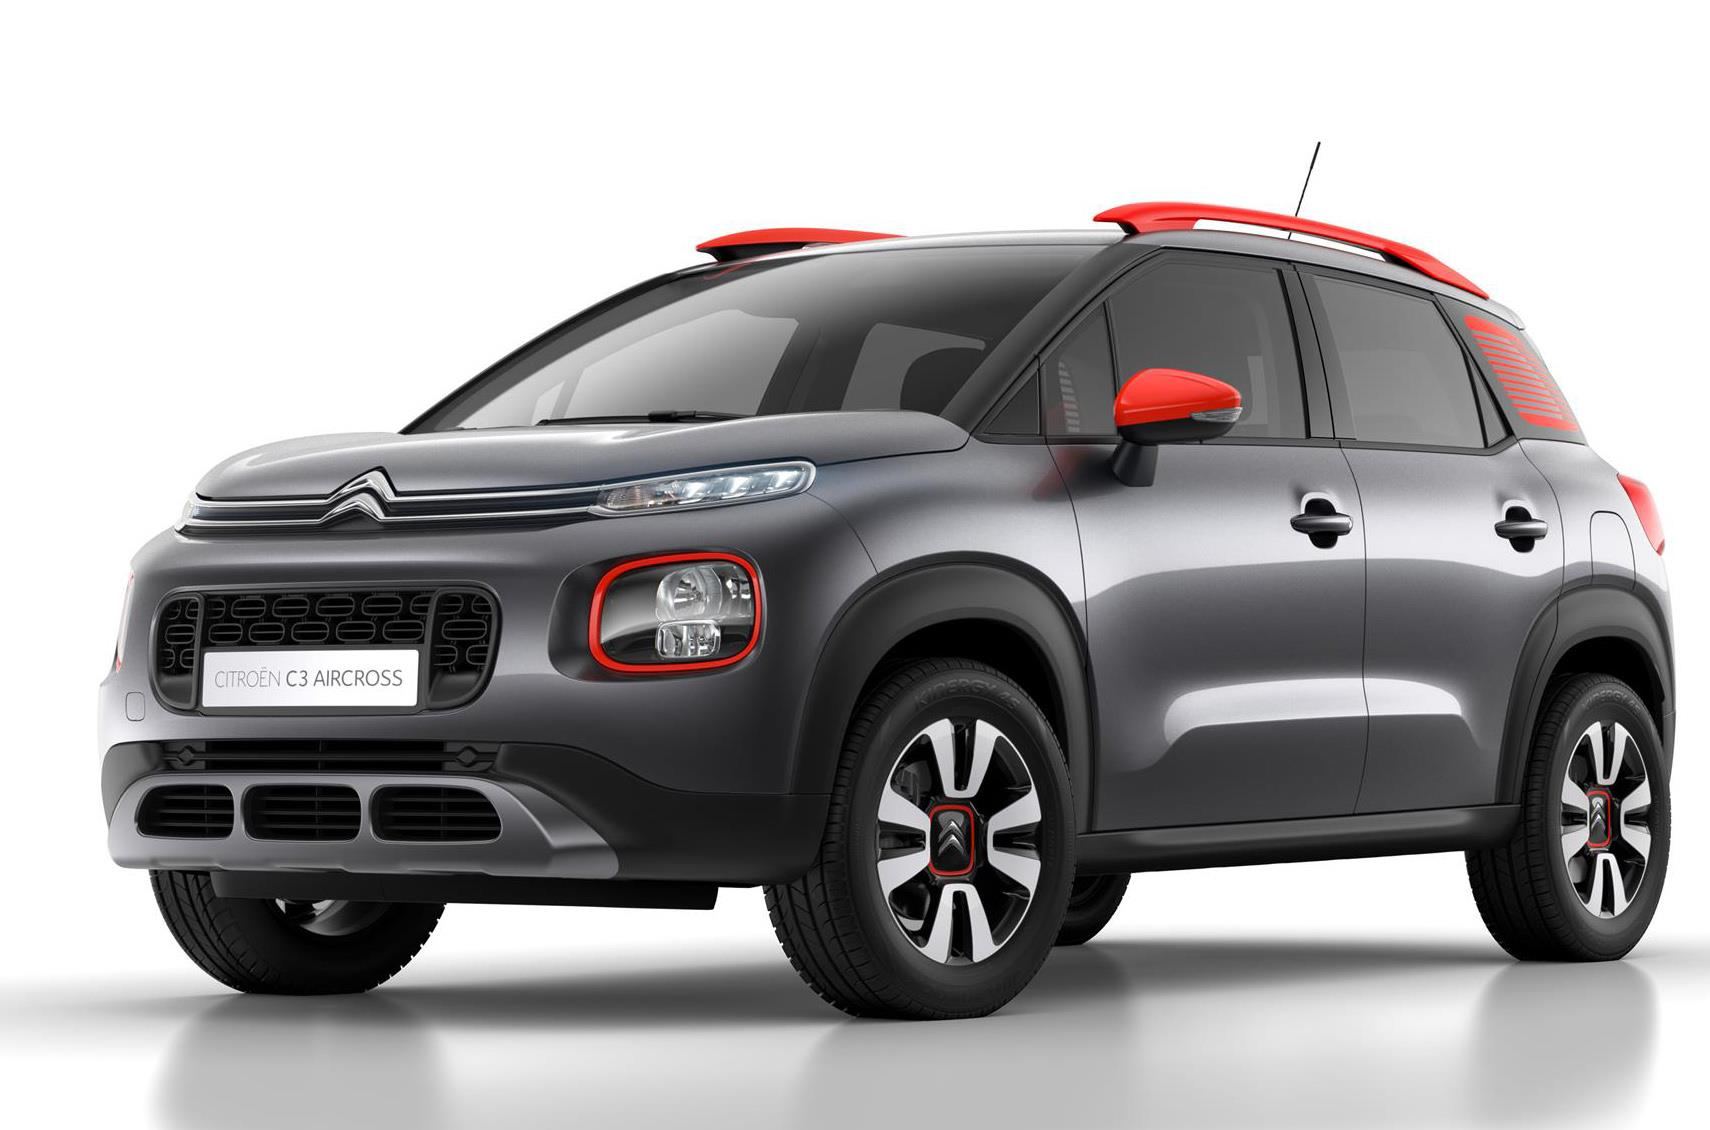 2017 citroen c3 aircross technical specifications and data engine dimensions and mechanical. Black Bedroom Furniture Sets. Home Design Ideas